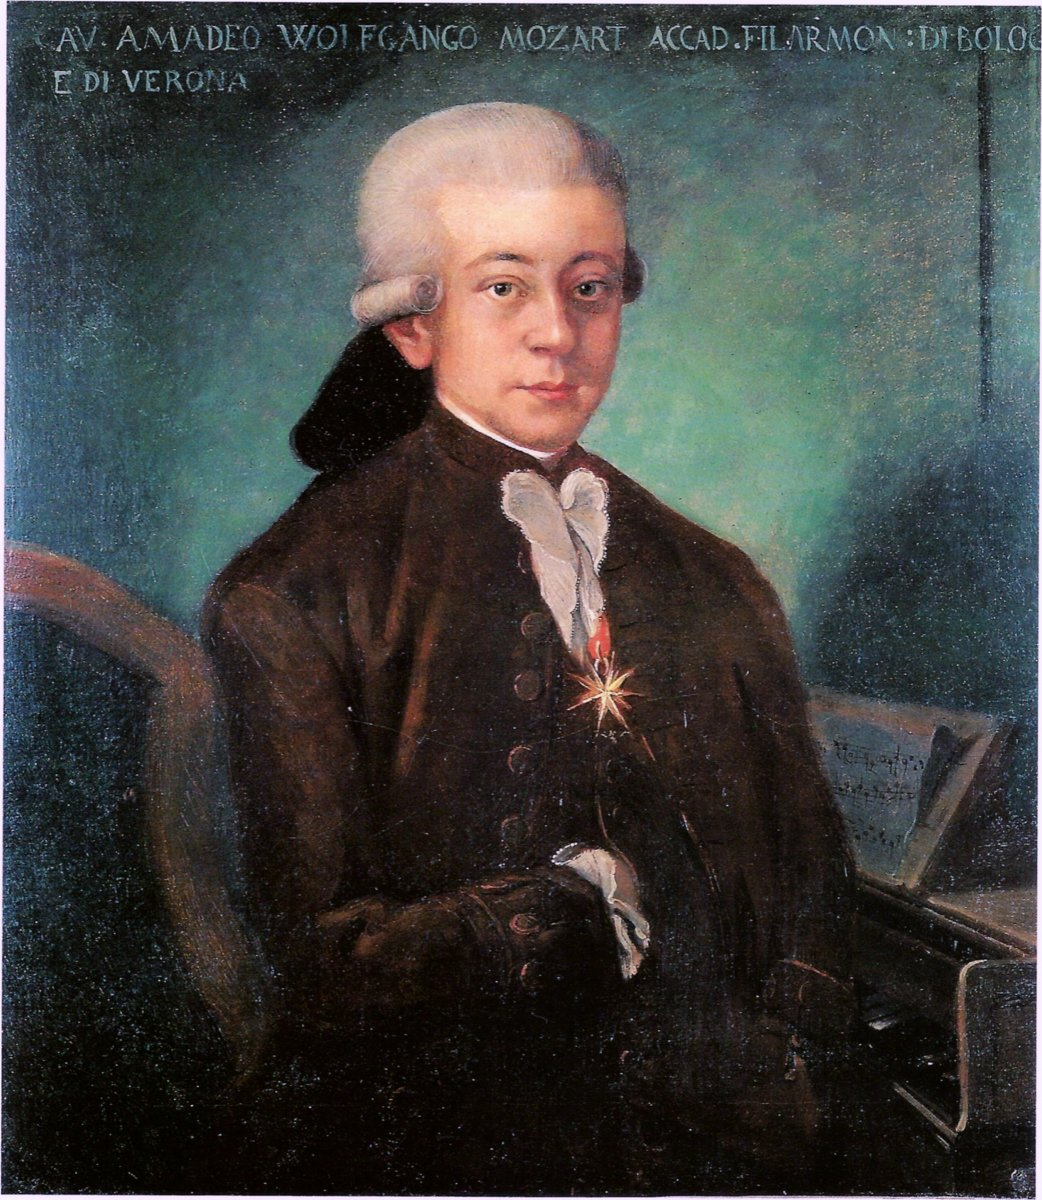 Mozart's Most Famous and Popular Music